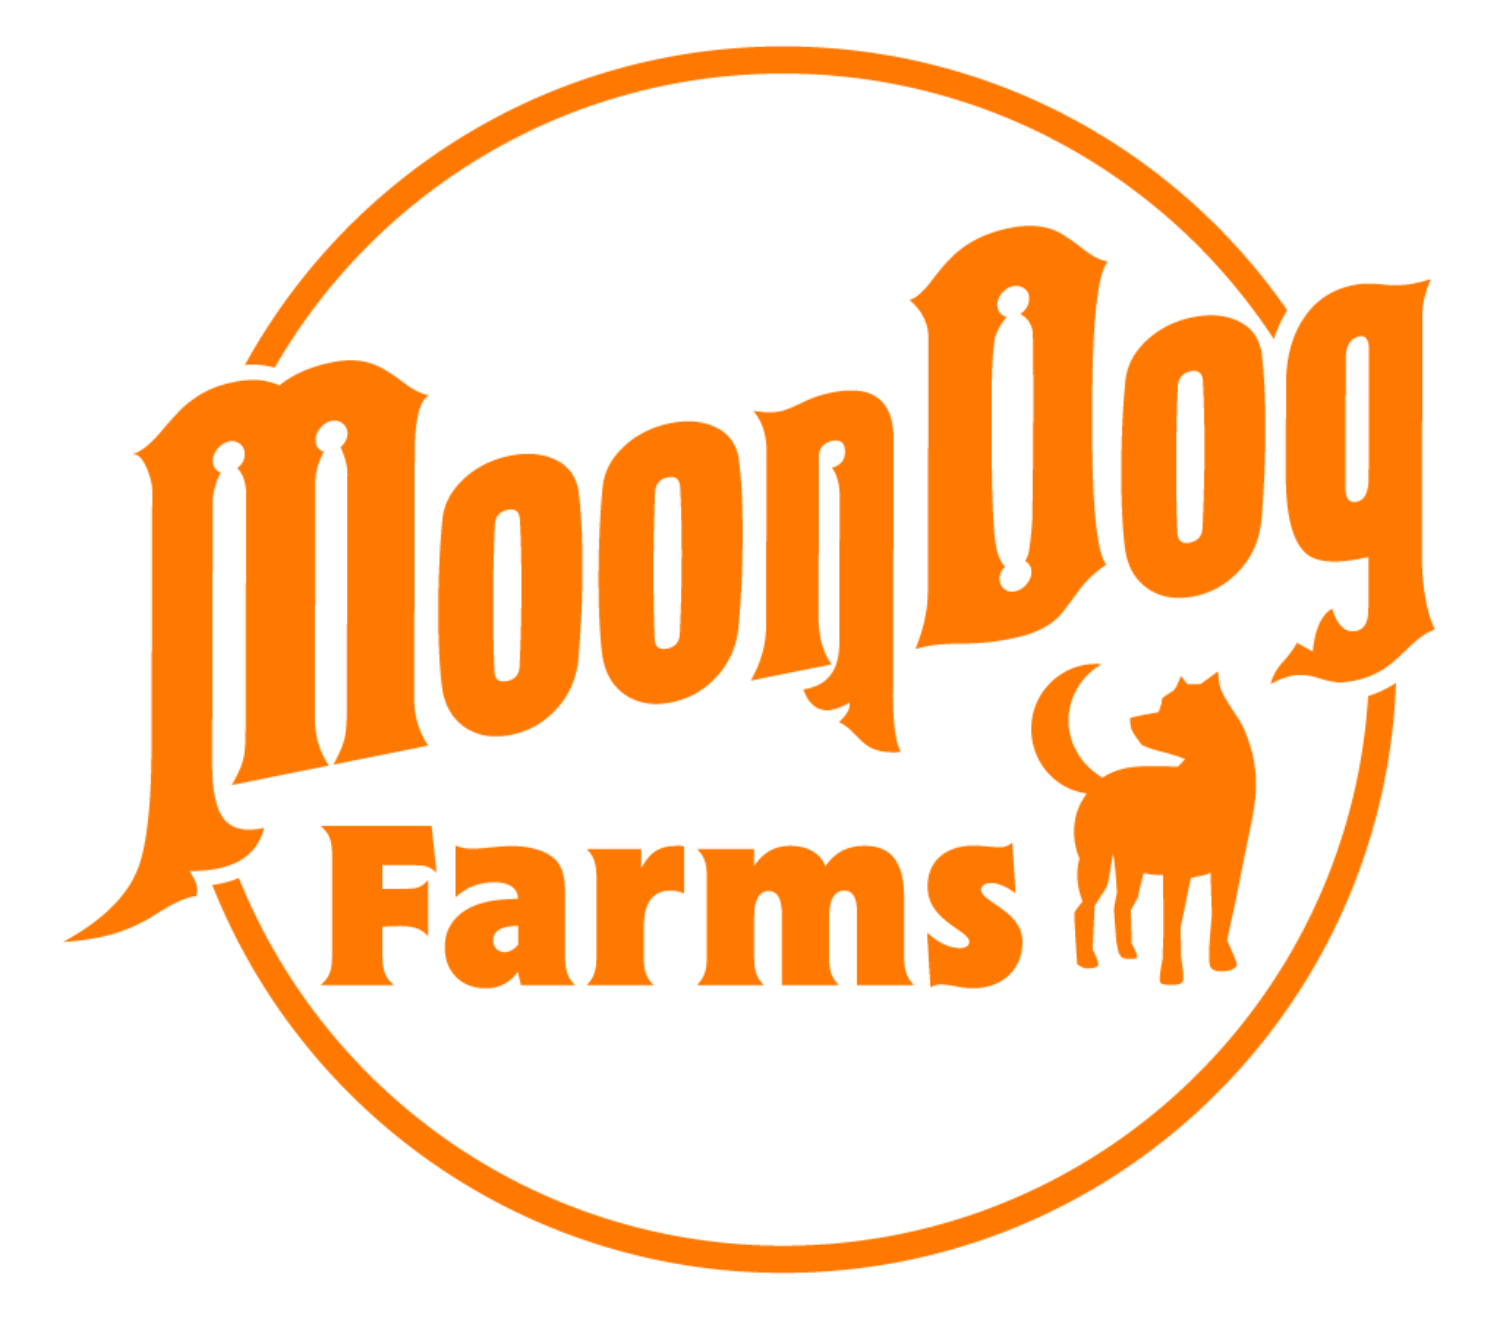 Moon Dog Farms